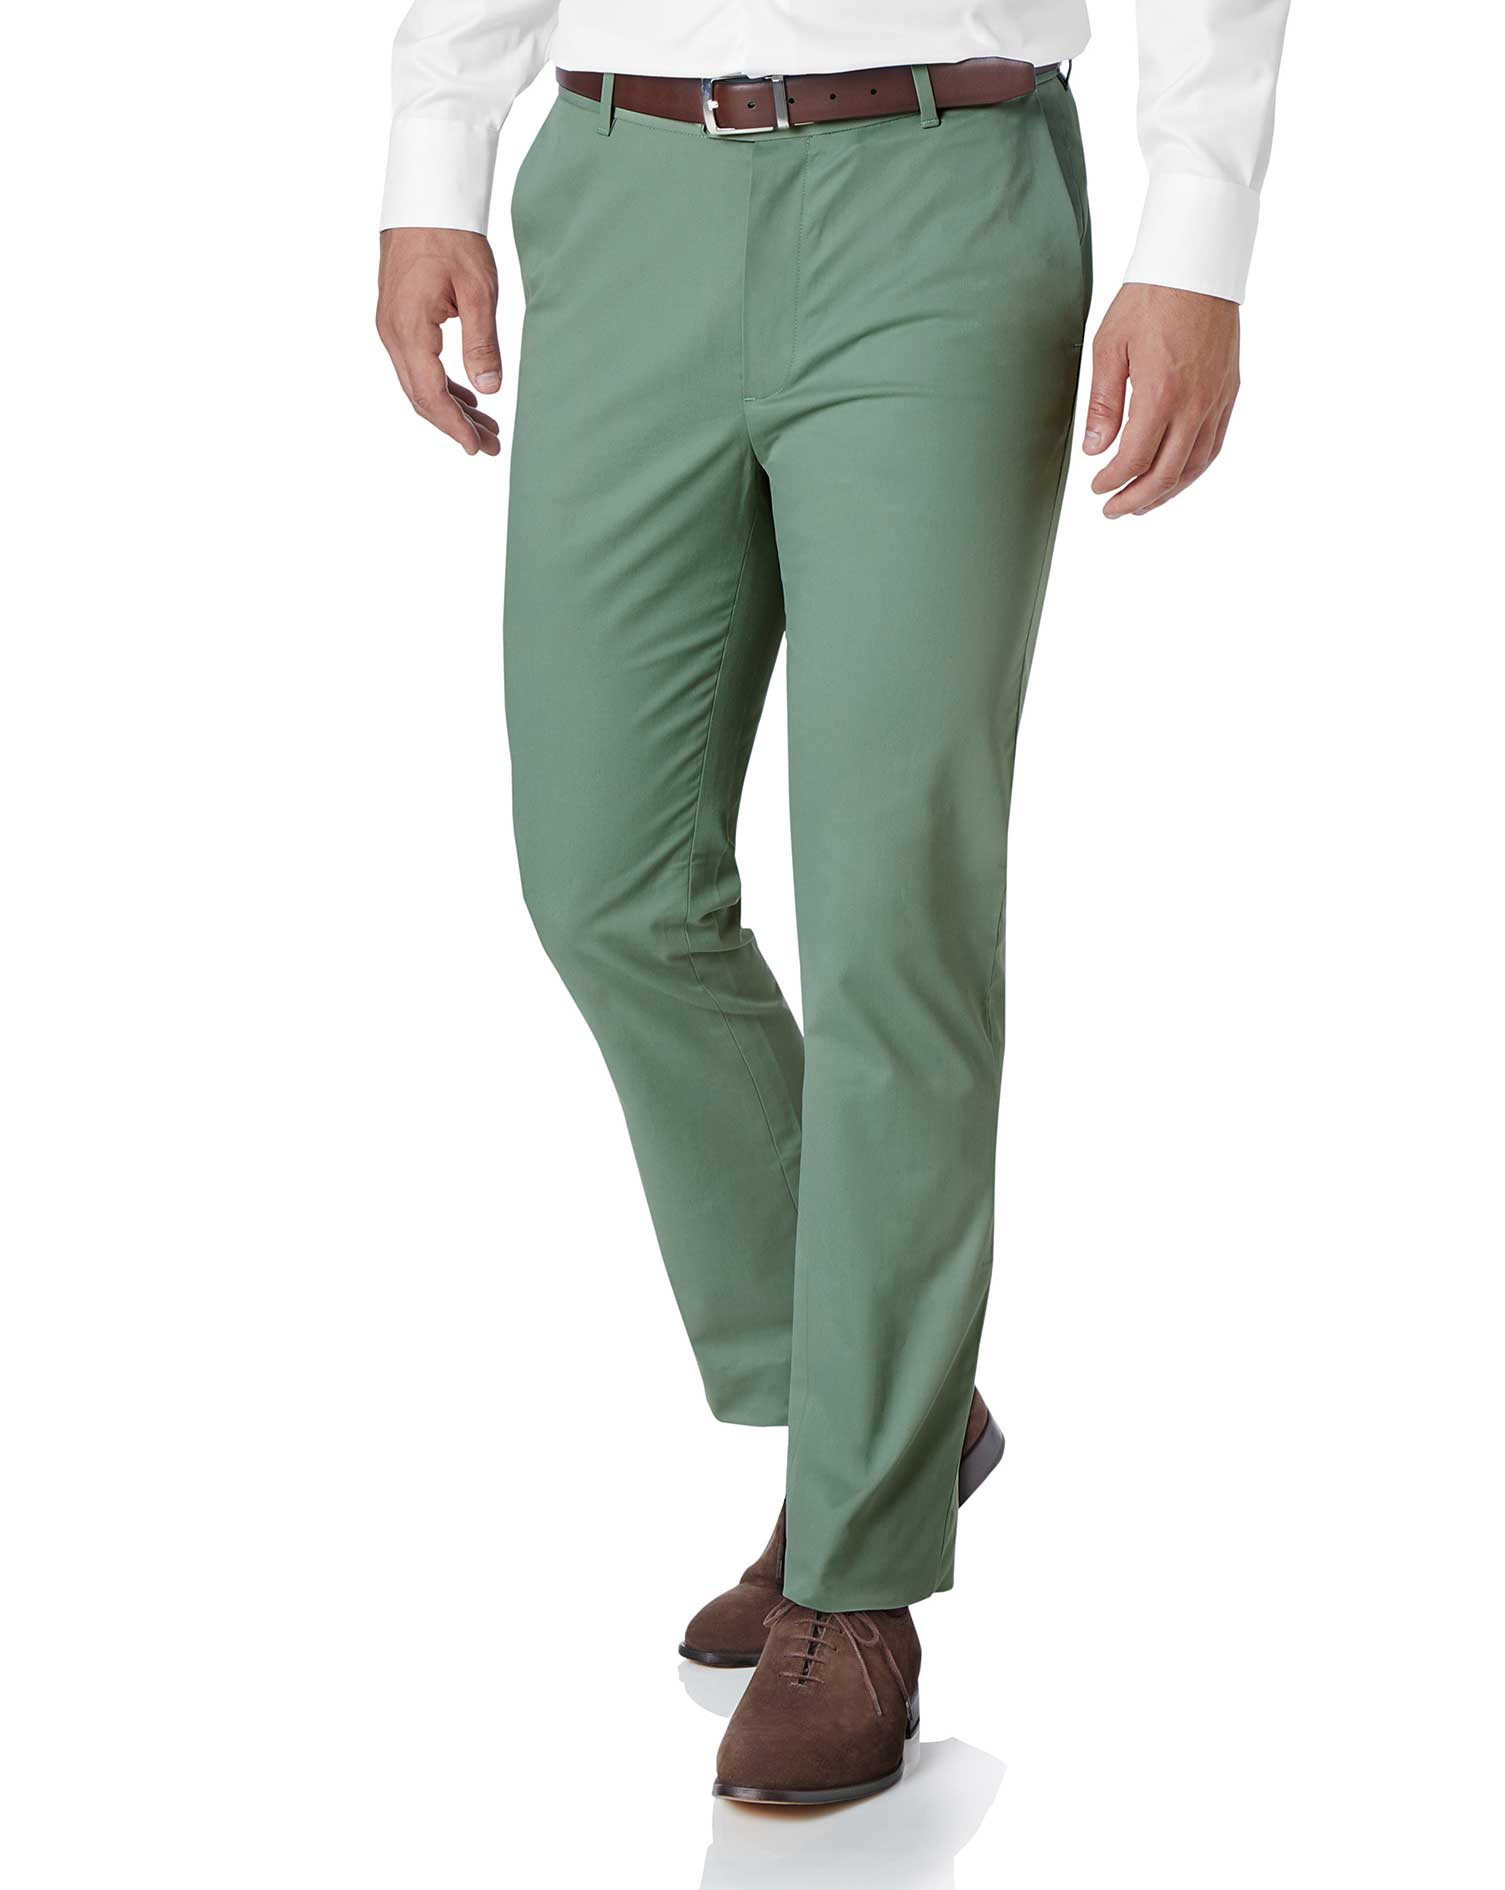 Light Green Slim Fit Stretch Cotton Chino Trousers Size W38 L34 by Charles Tyrwhitt